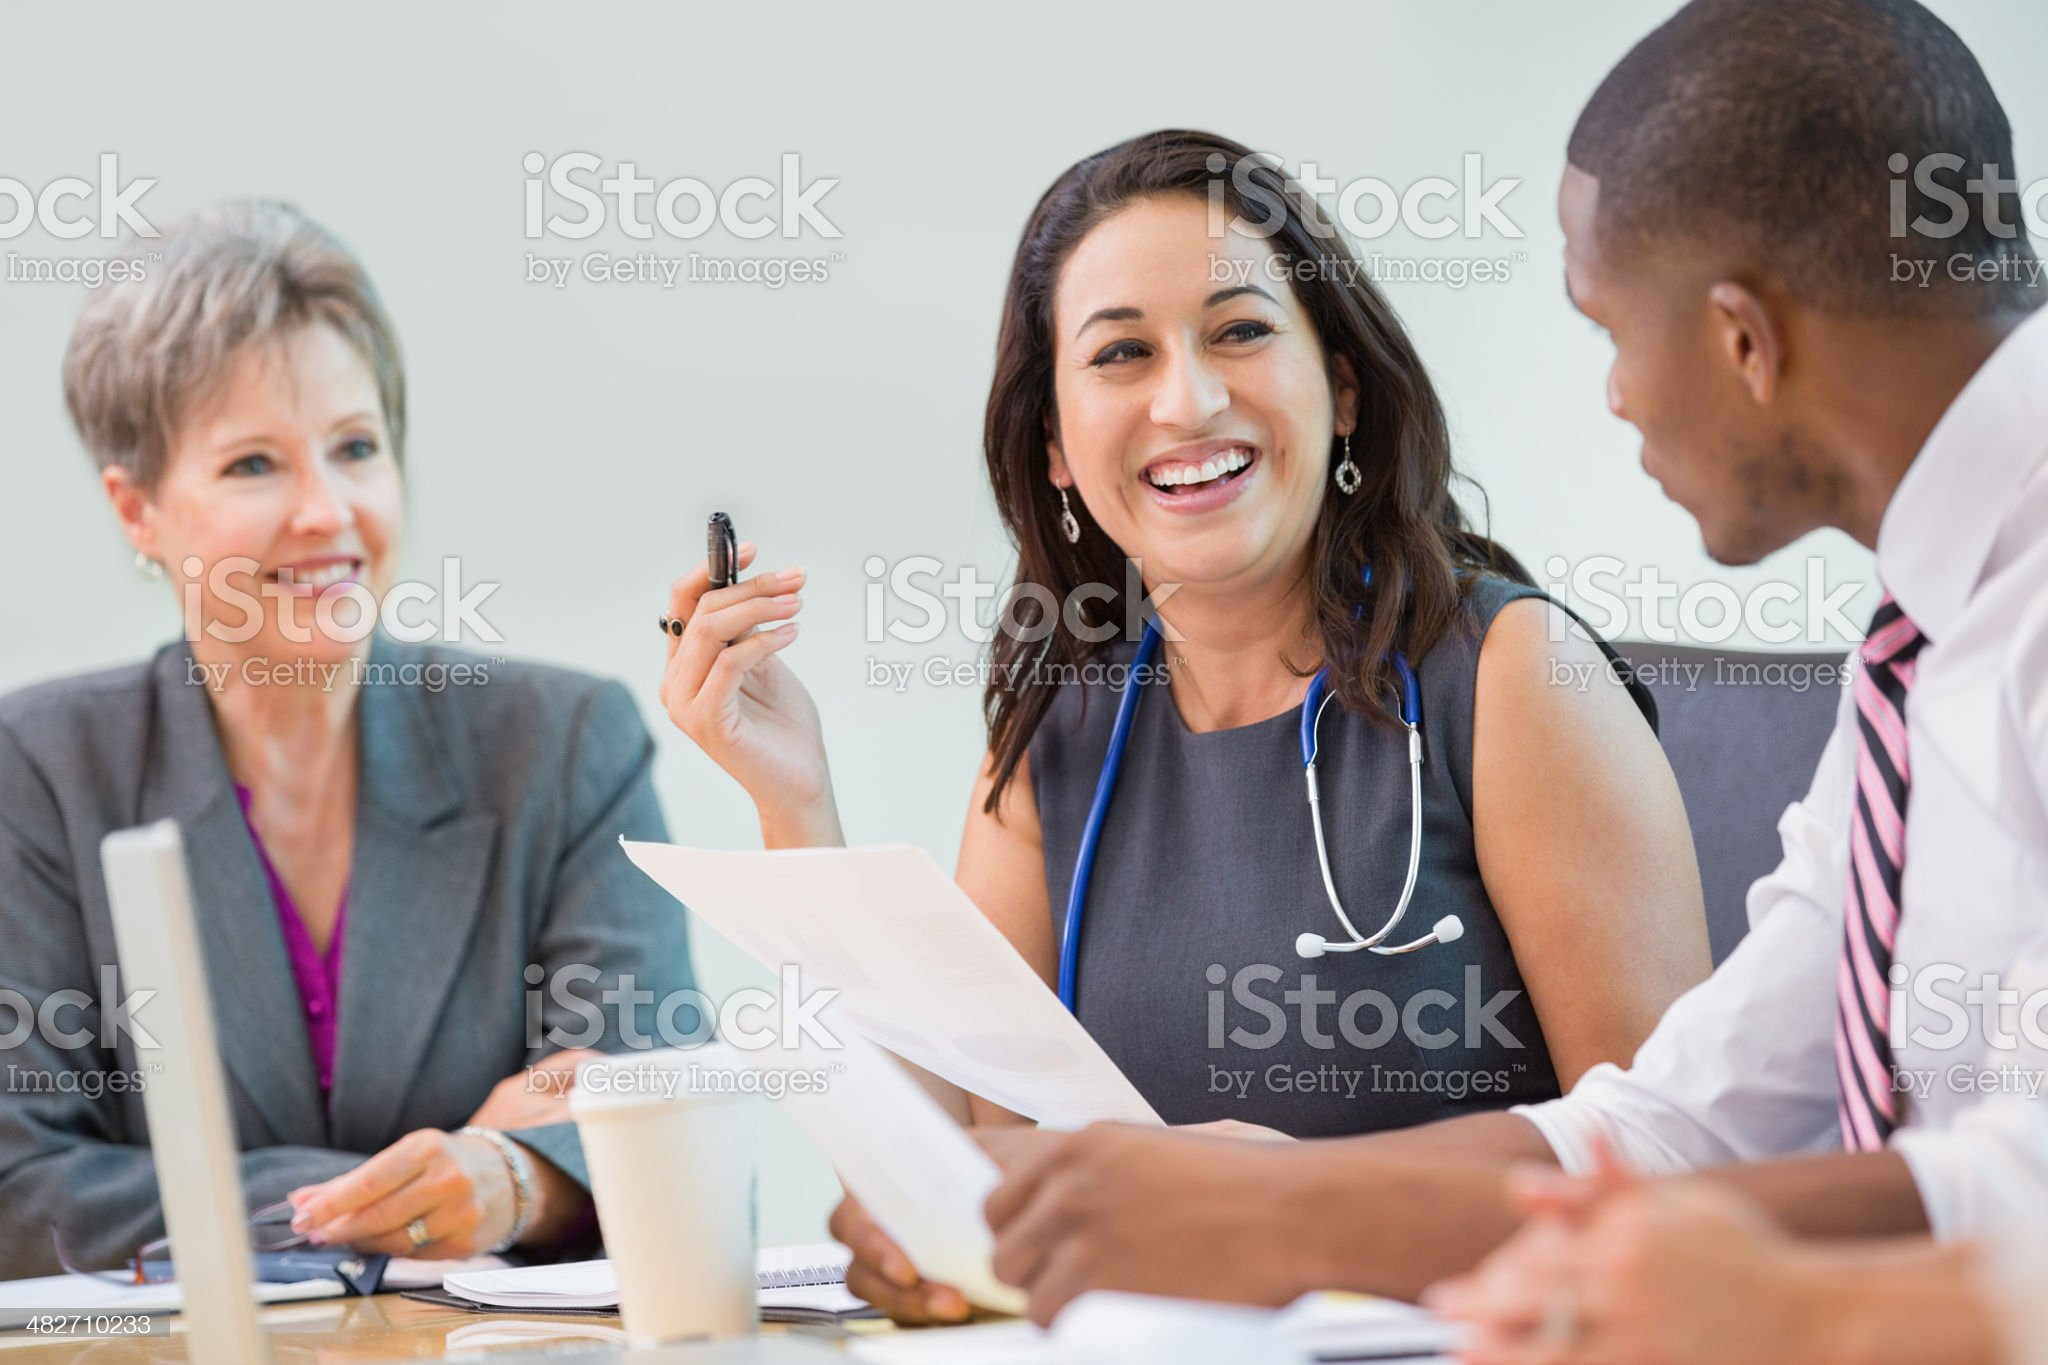 Hospital staff discussing healthcare procedures during board meeting royalty-free stock photo